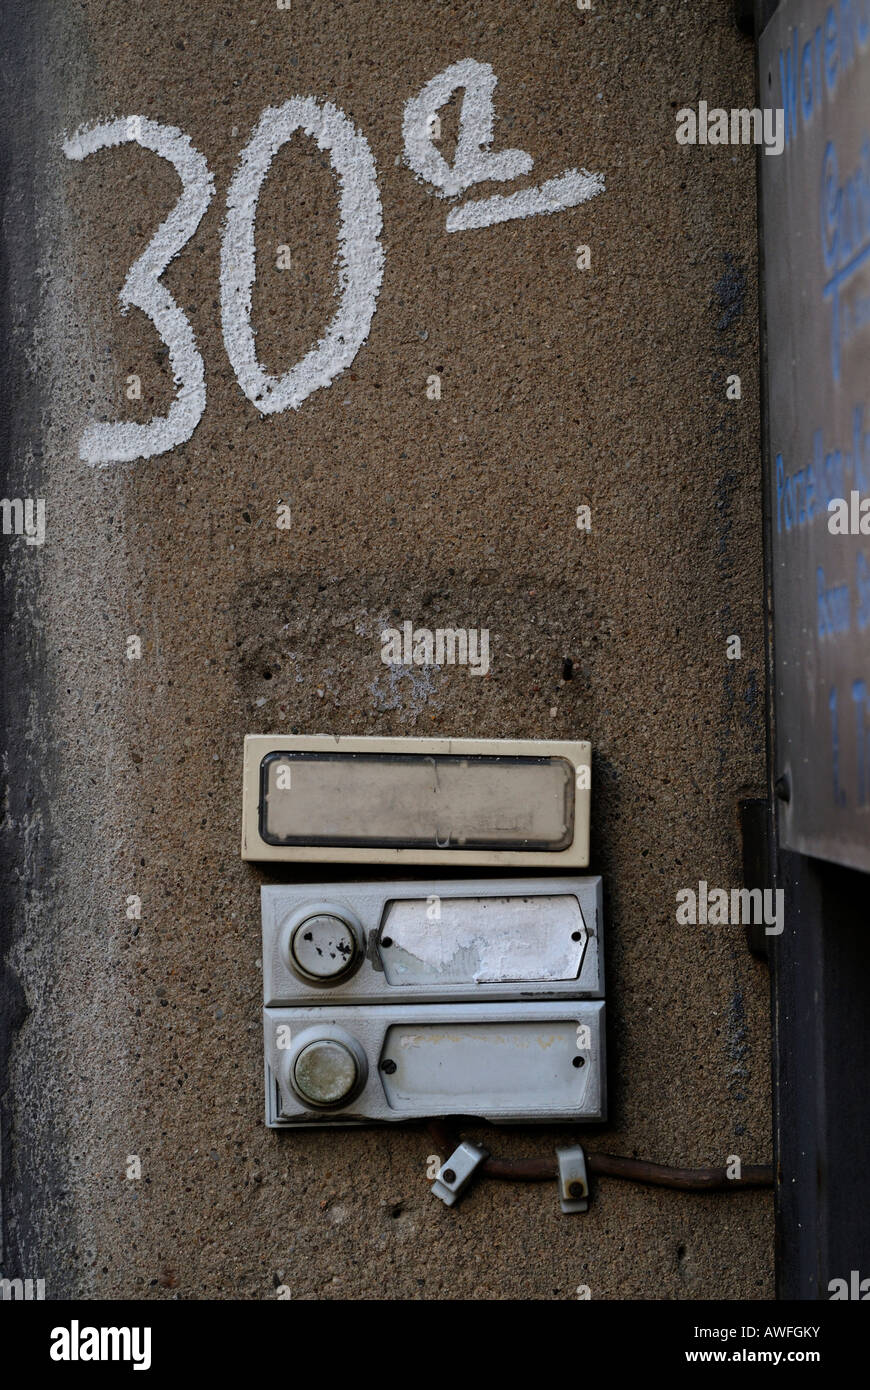 Apartment building entrance, closeup showing old doorbell listing tenants' names - Stock Image